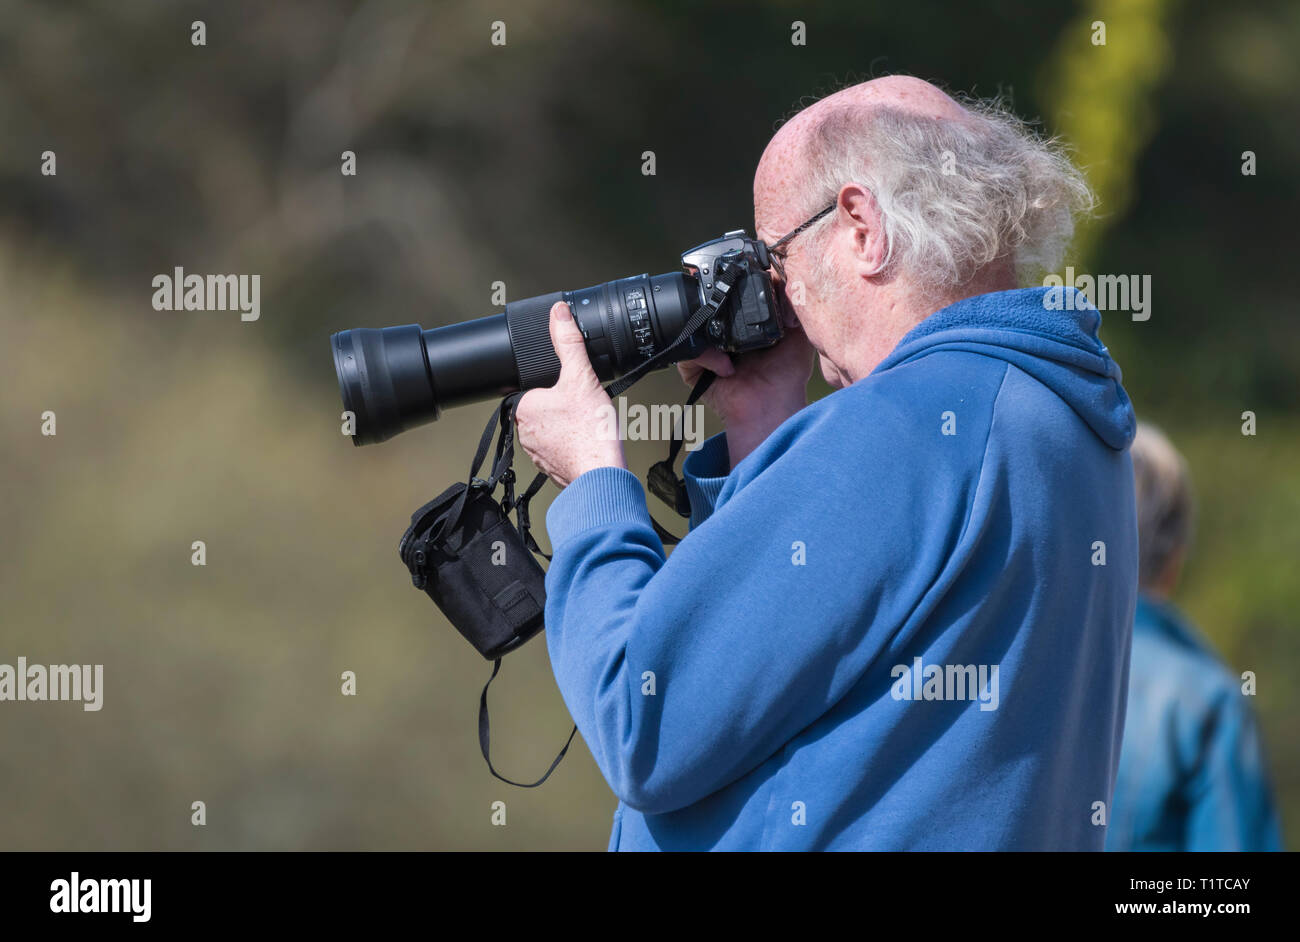 Senior man taking photographs with a DSLR and long telephoto lens. Side view of male taking photos with a digital camera. Pensioner hobby. - Stock Image